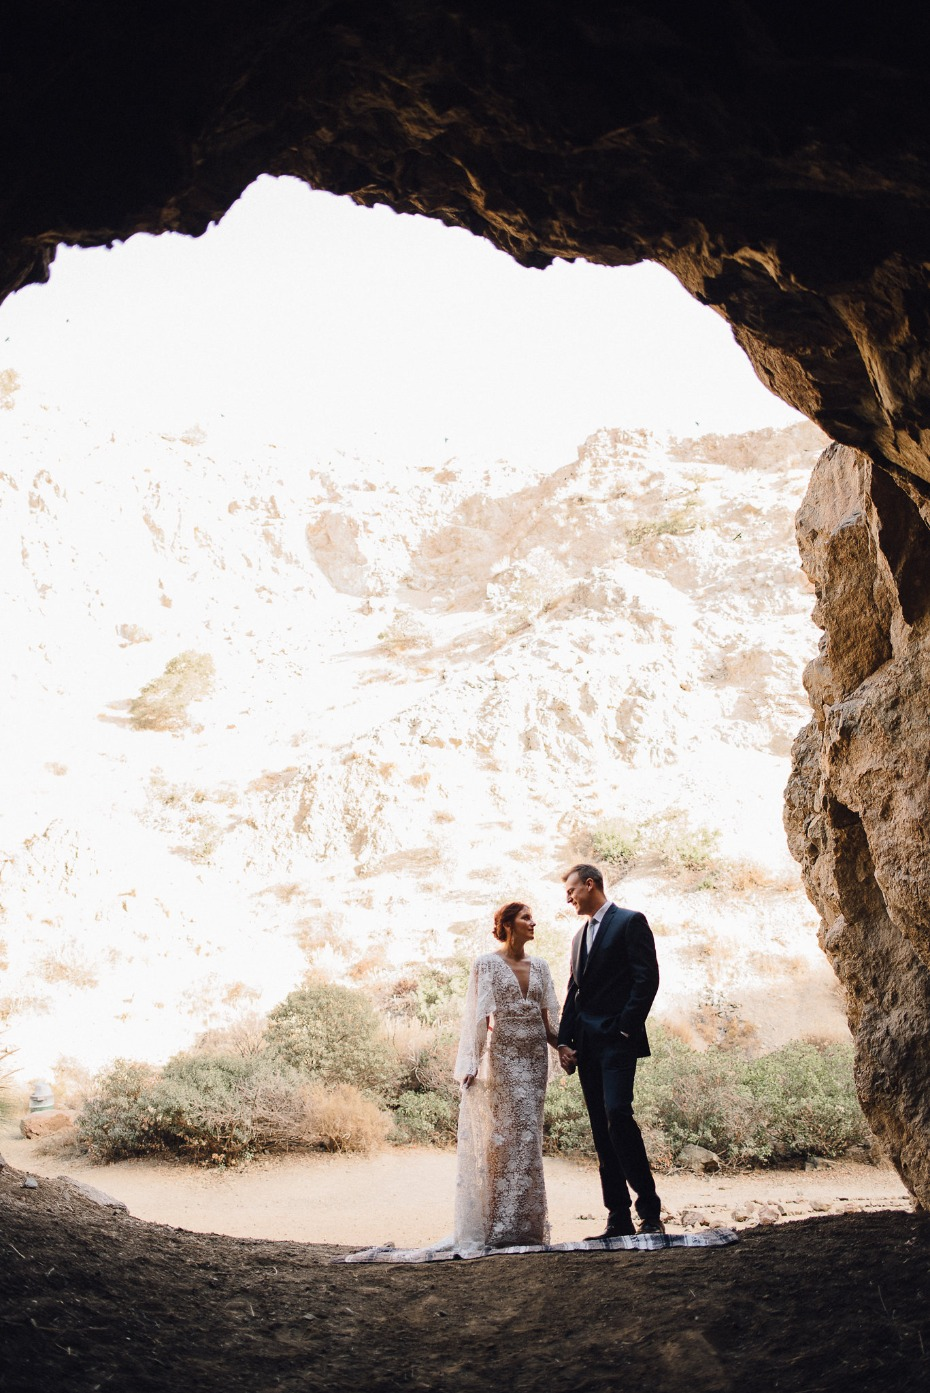 The Bronson Canyon Caves bohemian wedding ideas